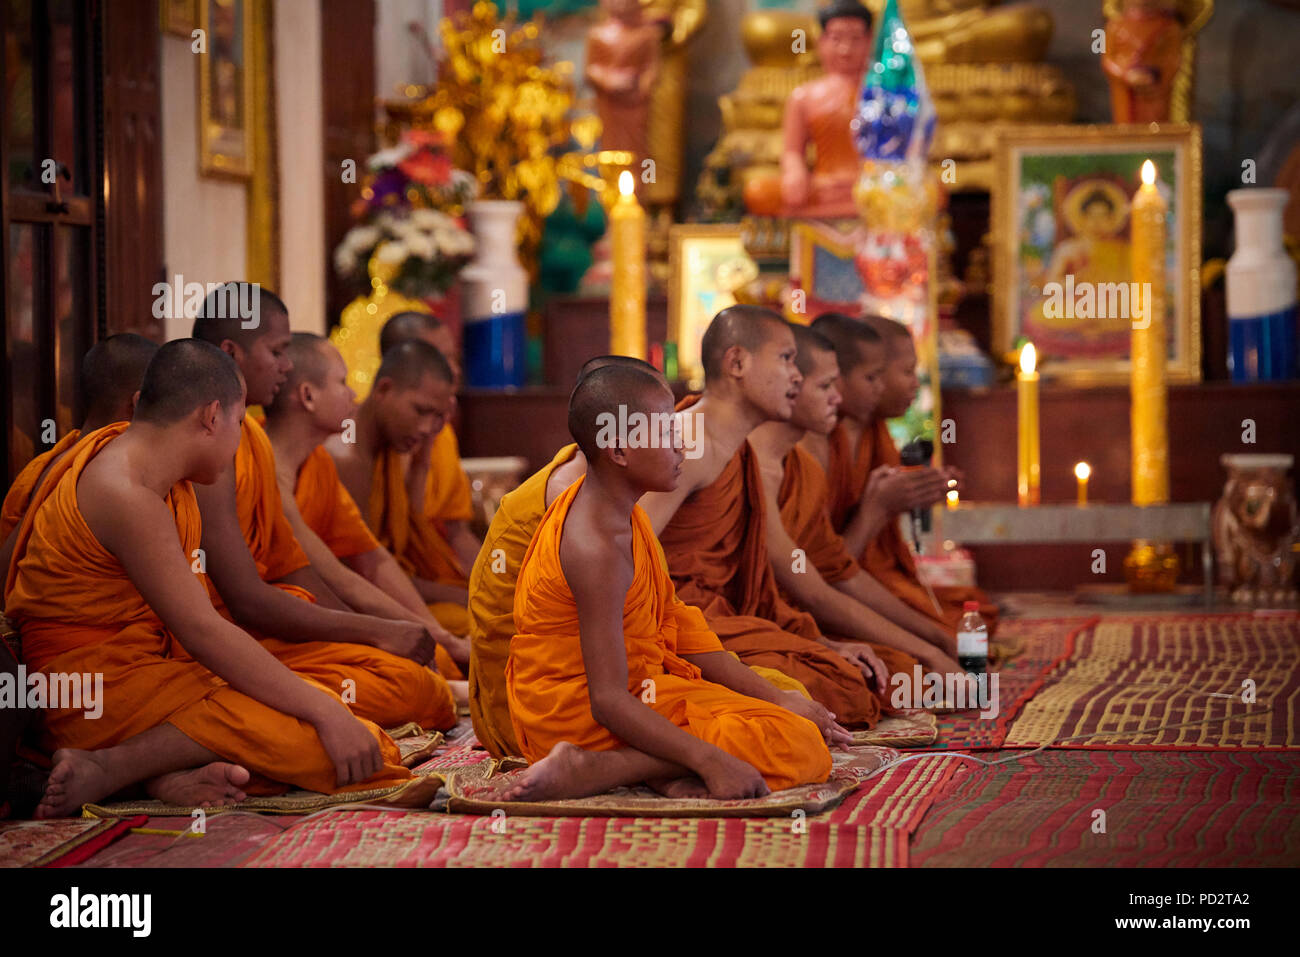 A group of young Buddhist monks sitting on the ground during a ceremony in one of the shrines in their monastery. In Siem Reap, Cambodia. - Stock Image